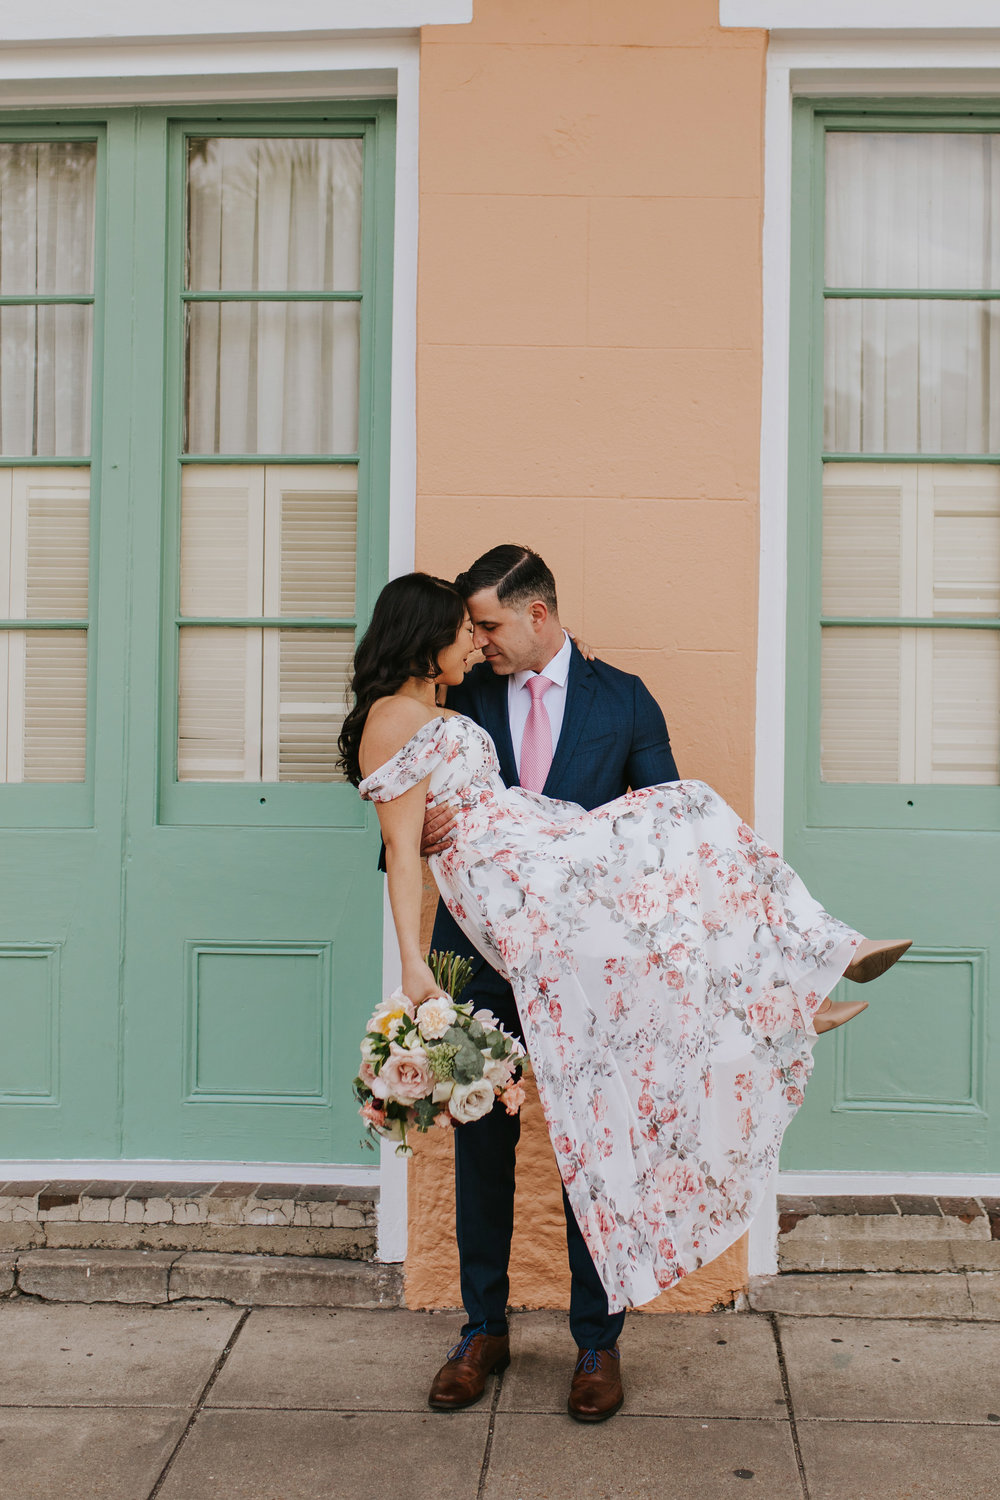 French Quarter Elopement New Orleans Wedding Photographer Ashley Biltz Photography8.jpg